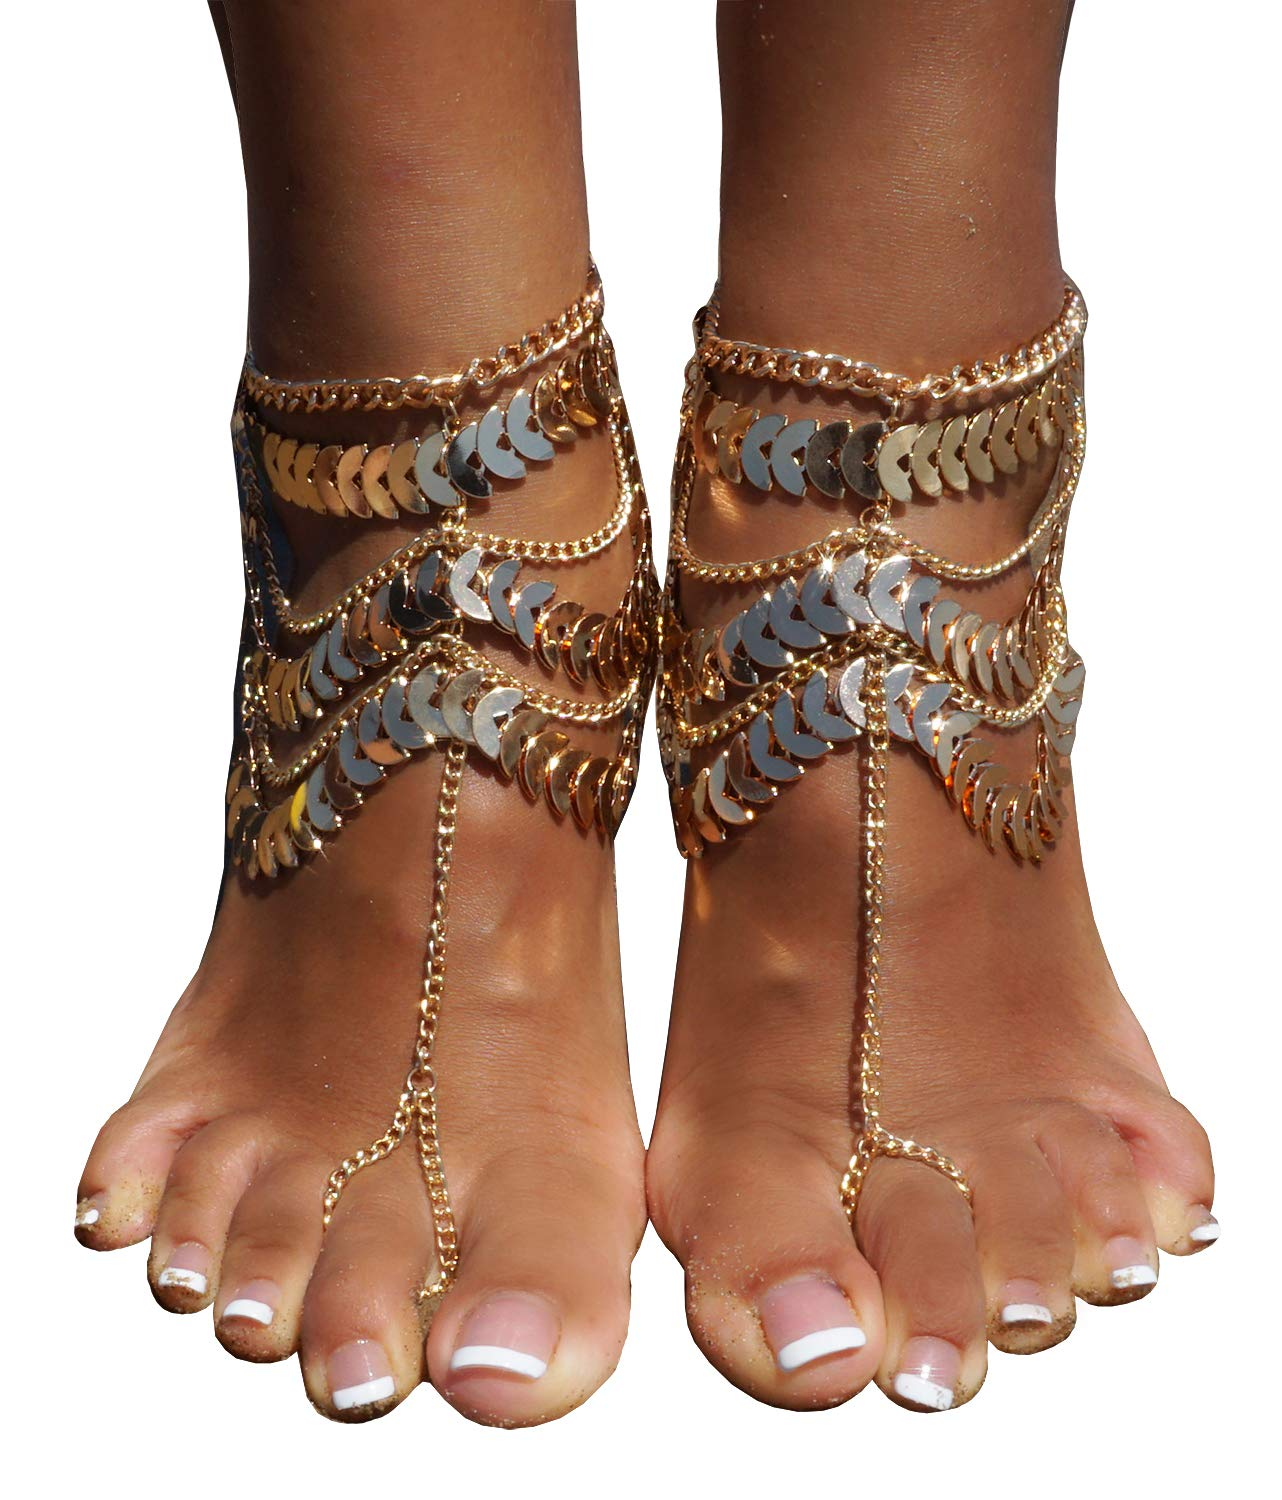 Women's Lady's 2 Piece Golden Multi layer Foot Chain Anklet Barefoot Sandals Beach Foot Jewelry, Gold